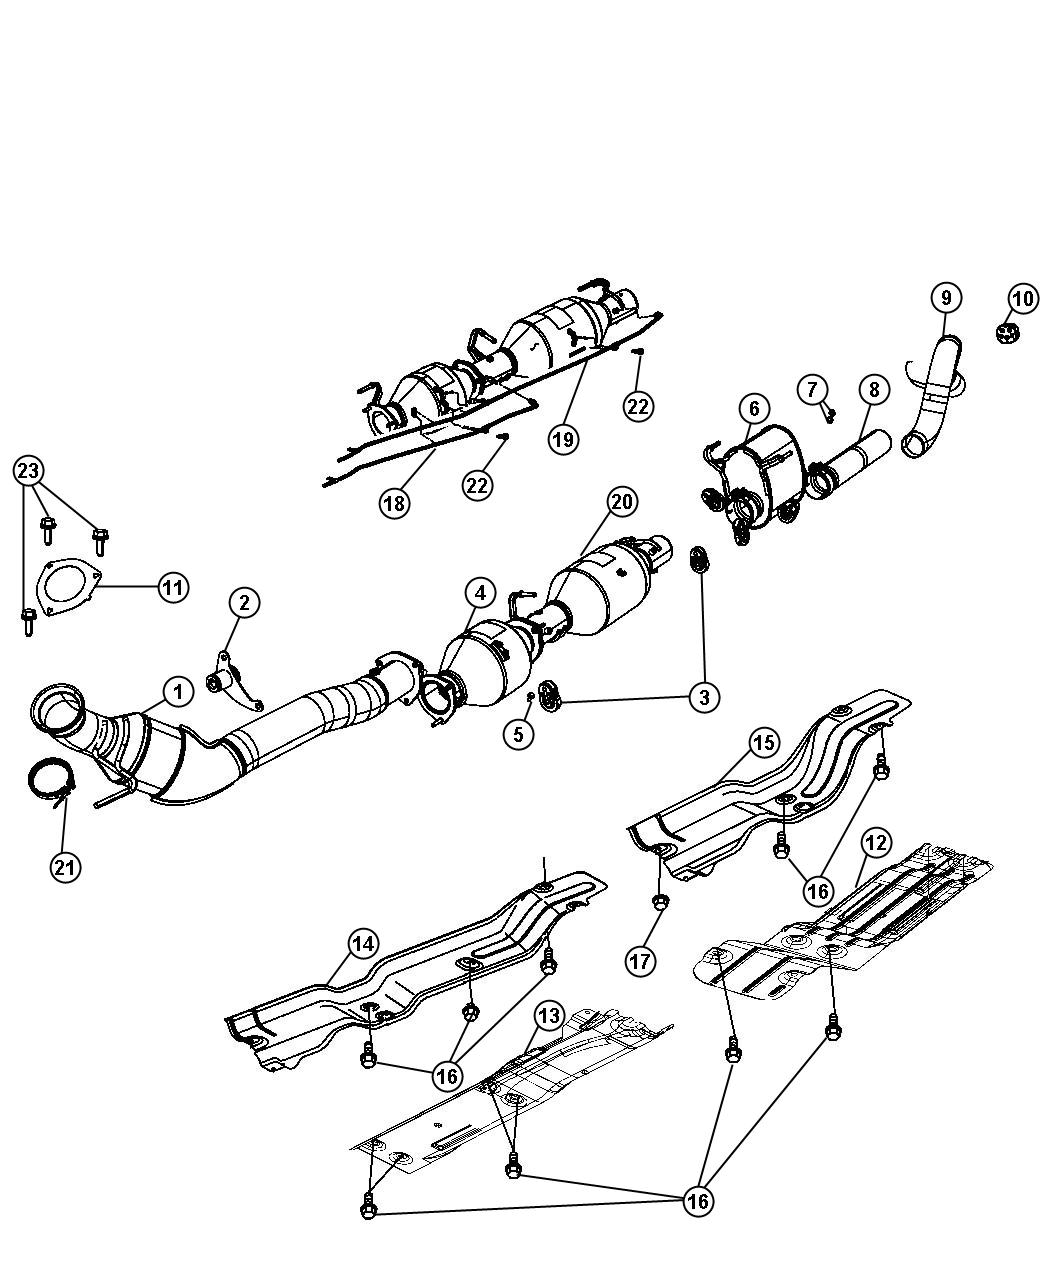 2011 Jeep Compass Pipe. Exhaust extension. System, eth